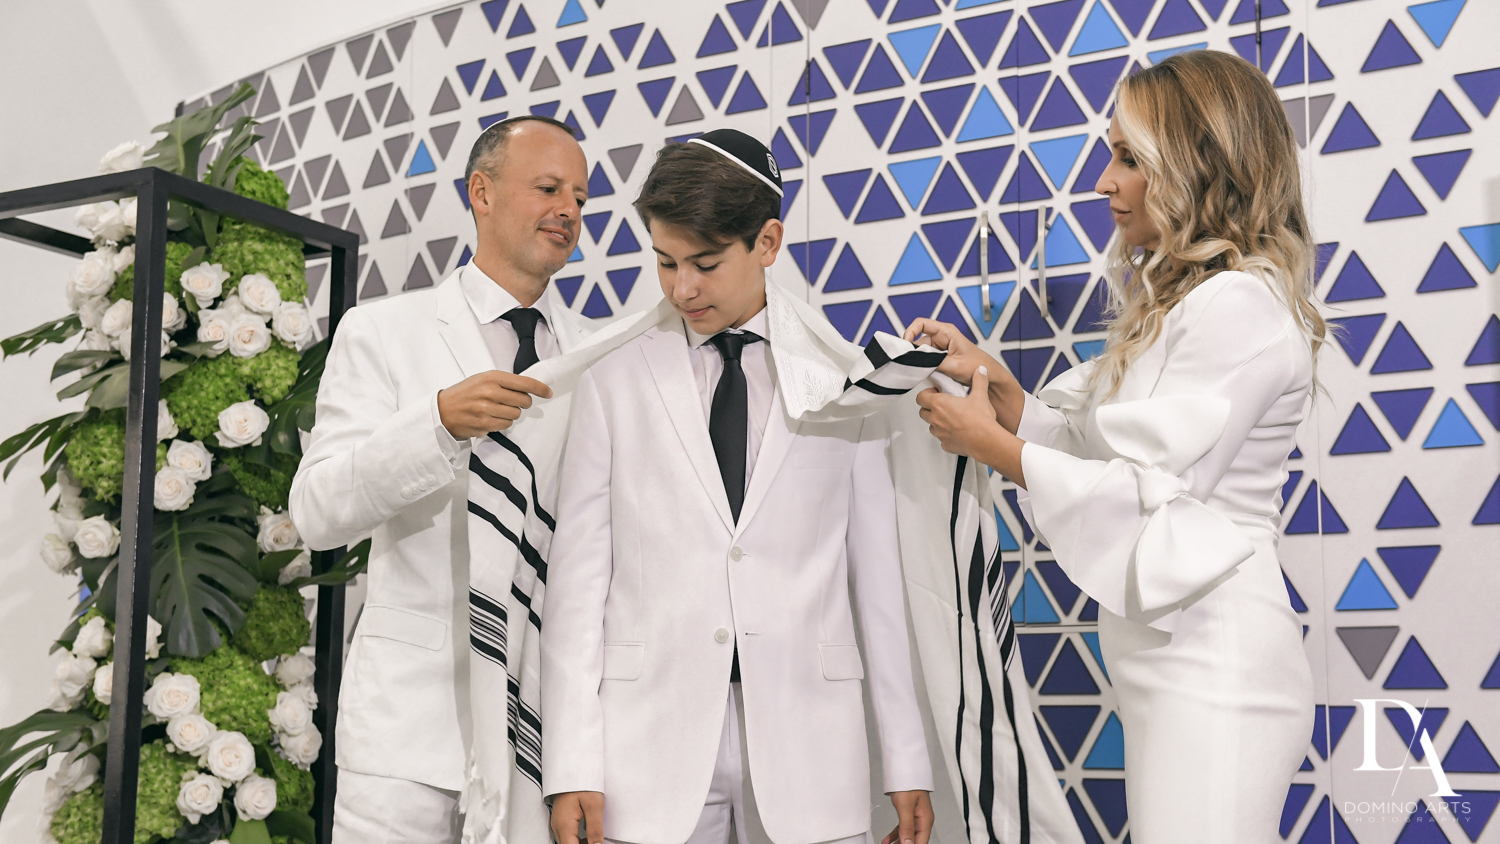 traditions at Bar Mitzvah Ceremony at Aventura Chabad by Domino Arts Photography